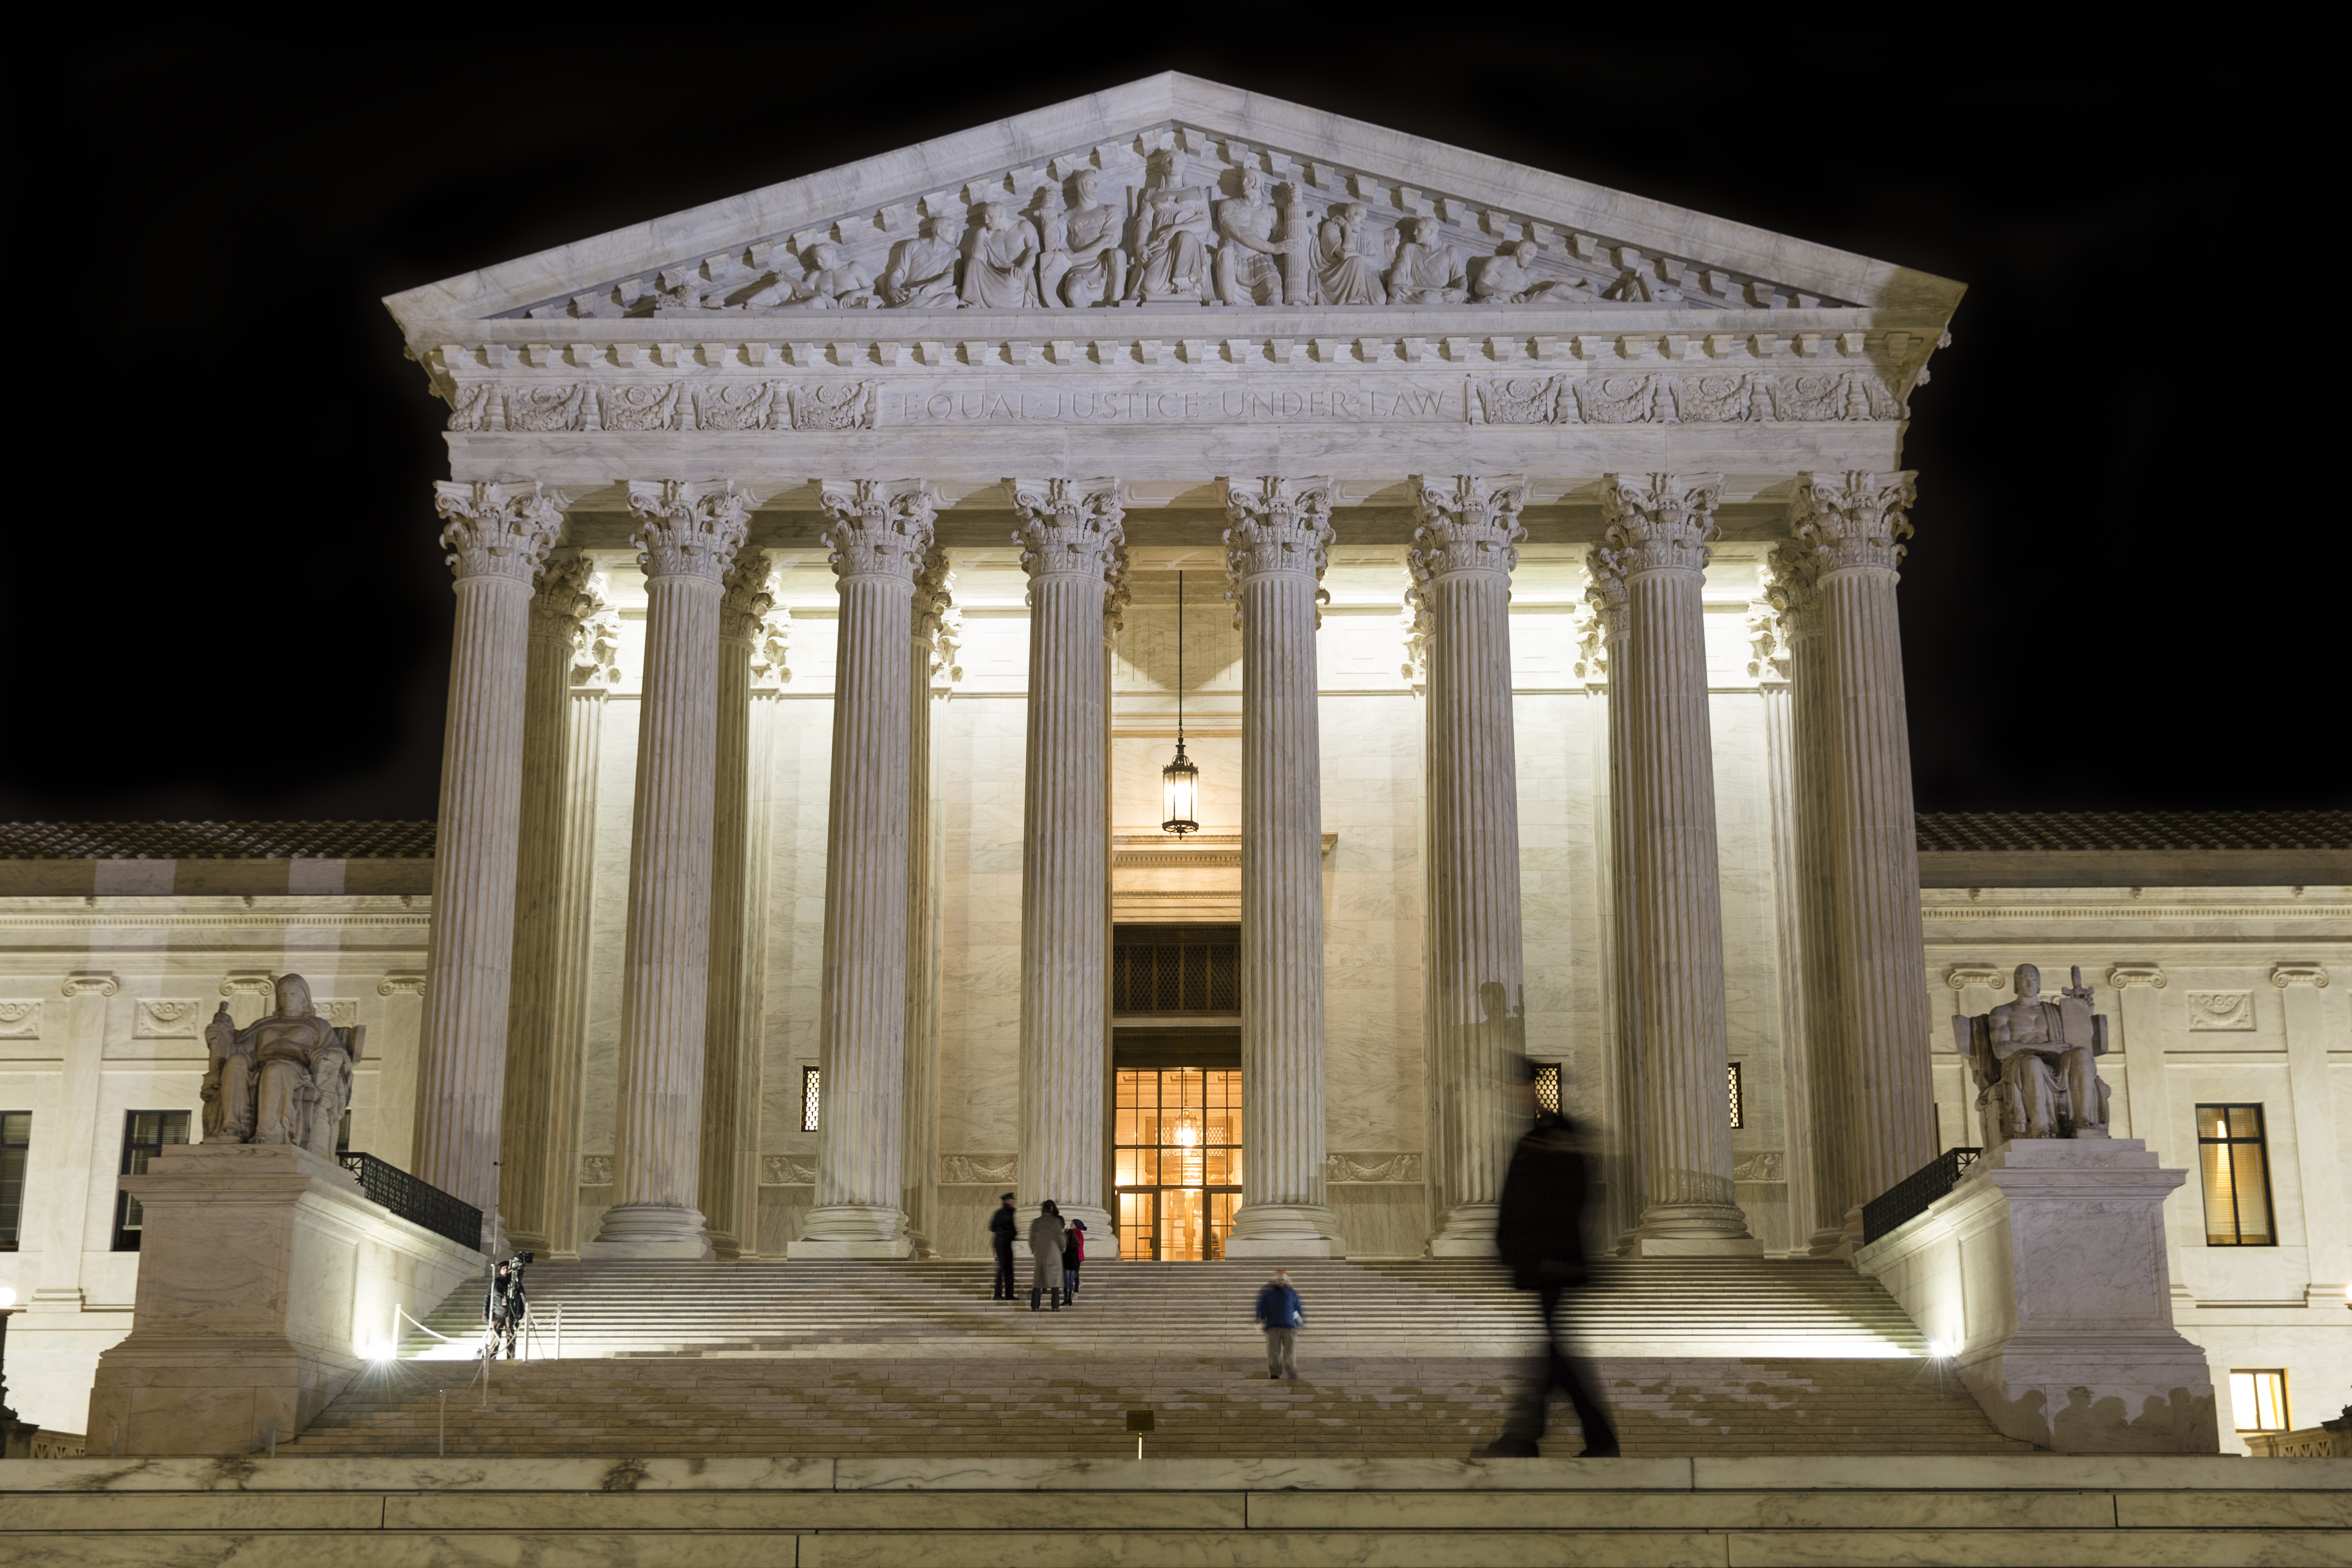 The Supreme Court at Night